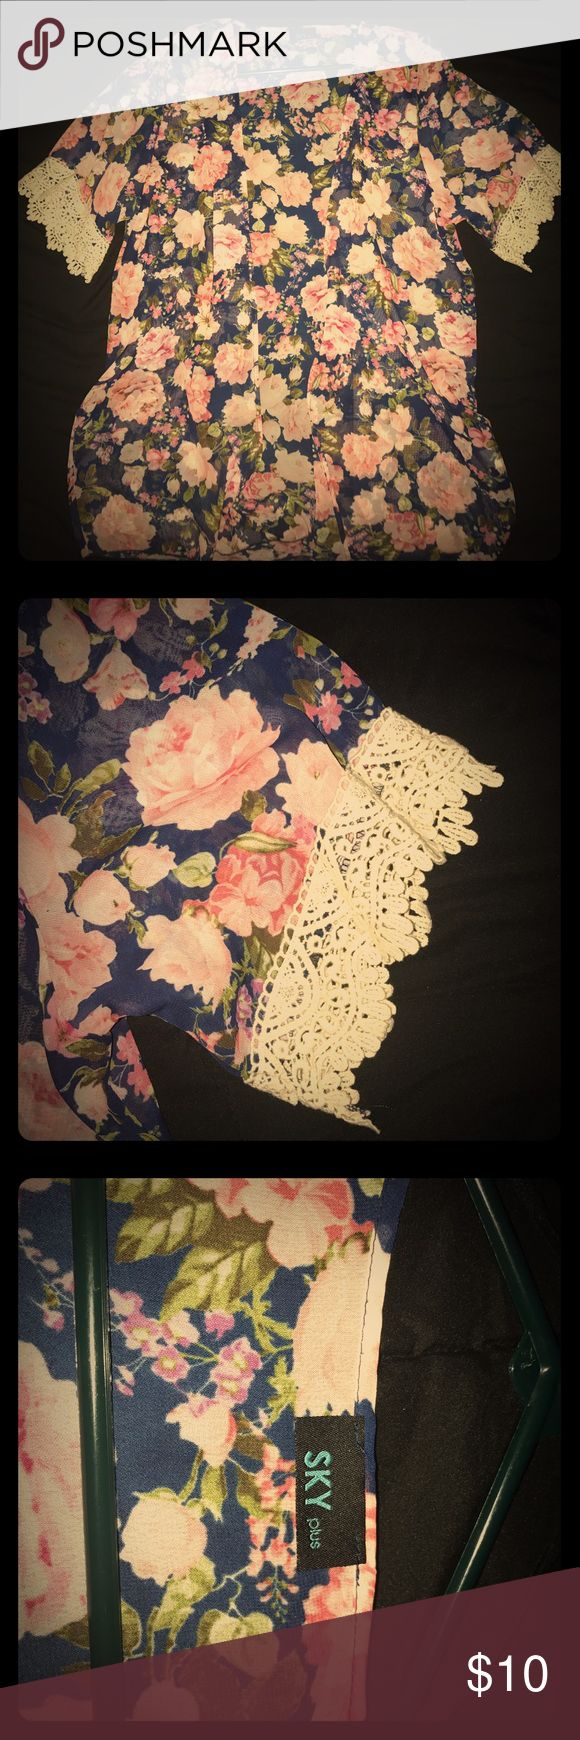 Flower shawl Sorry I tried to pick a good filter that really brought out the warmth in these colors, but the shawl is super thin light weight material with a cream lace attached to the arm area. Worn once and is in perfect condition🌺 SKY plus Other